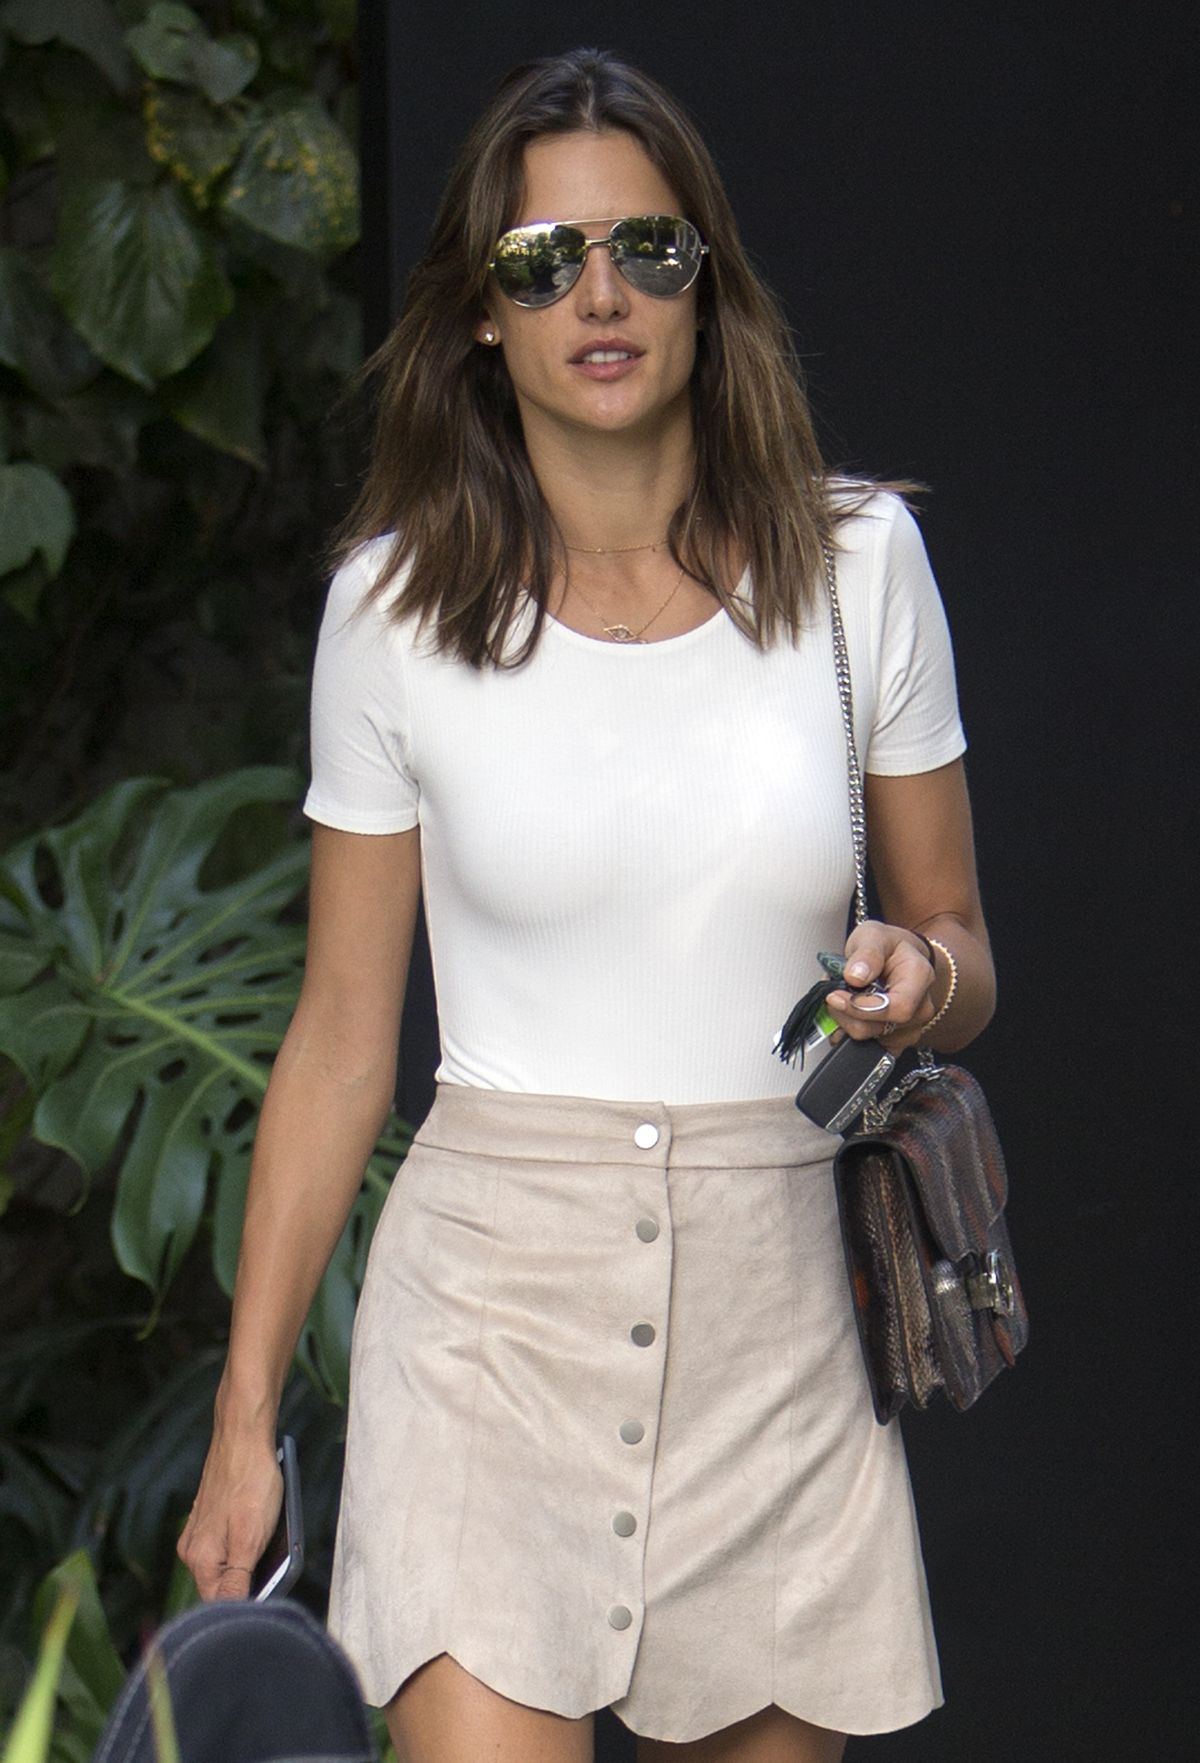 ALESSANDRA AMBROSIO in Skirt Out in West Hollywood | Stunning Actress